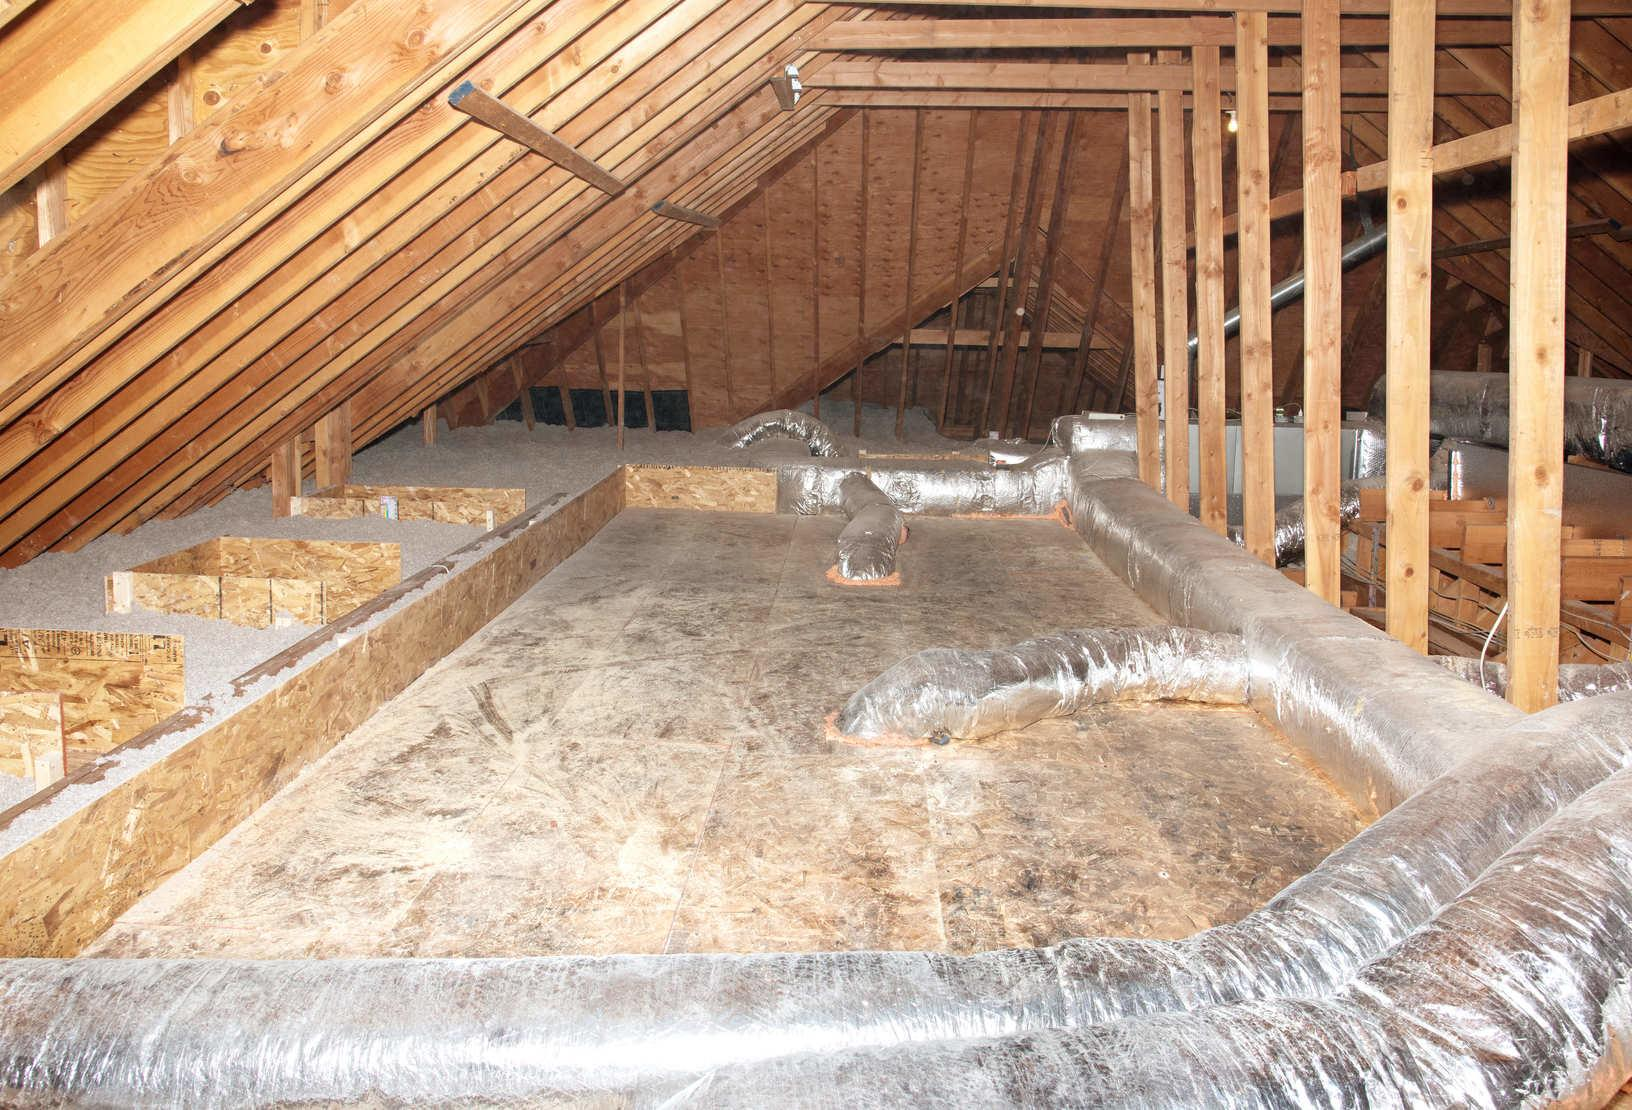 Attic Insulation and Air Sealing Ductwork - After Photo